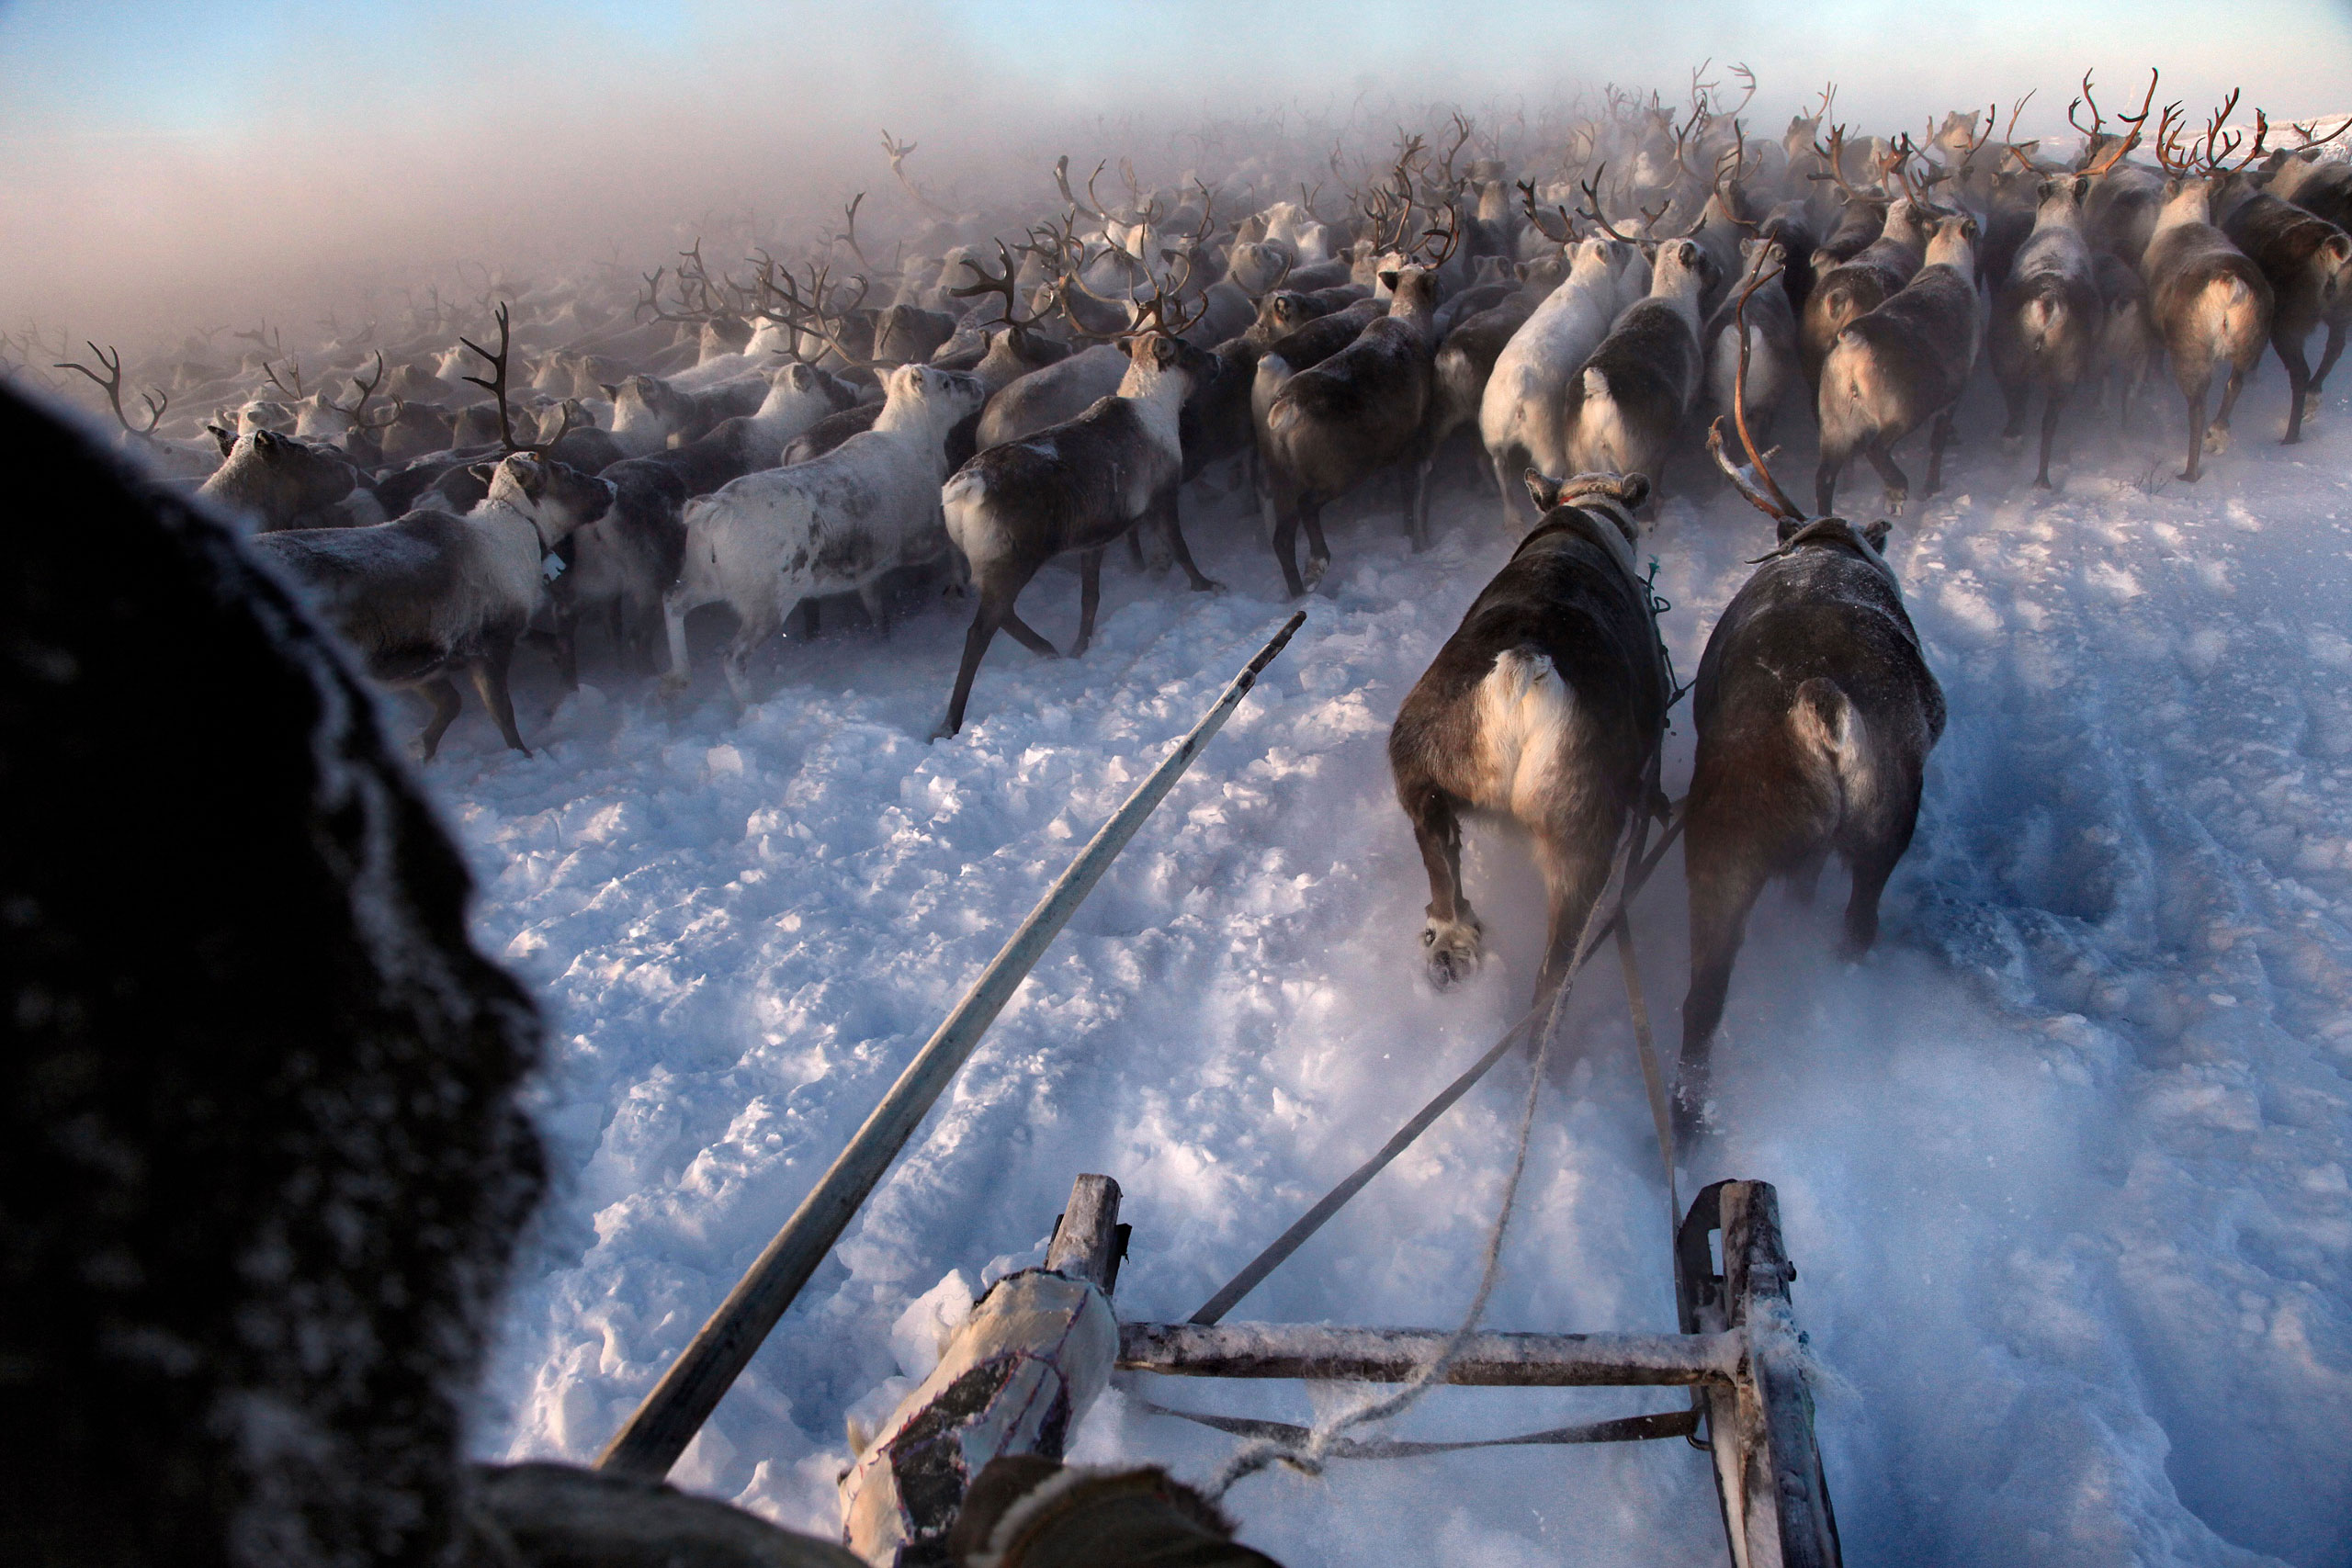 Nenets, native people of the Russian Arctic region, herd reindeer in -40C (-40F). The herders sell reindeer meat to sausage factories and antlers to China for use as traditional medicine, February 2011.